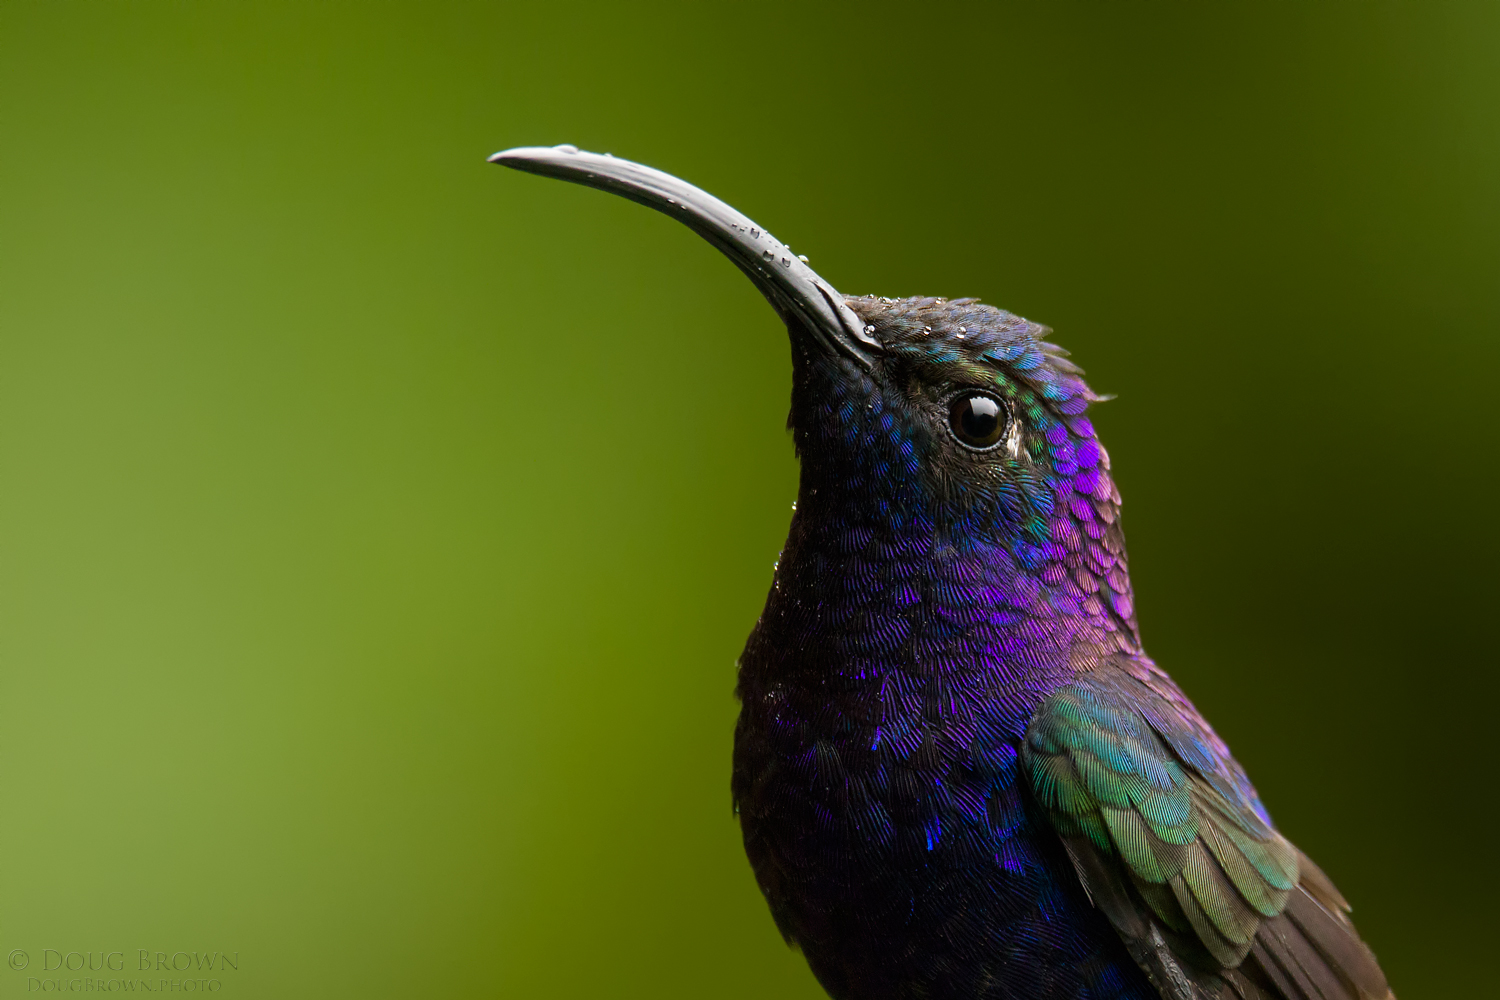 This Violet Sabrewing portrait was captured during our Costa Rica workshop. The image was shot with the 150-600 Contemporary at 600 mm and the Canon 7D Mark II (f/7.1, 1/250, ISO 2000, hand held).